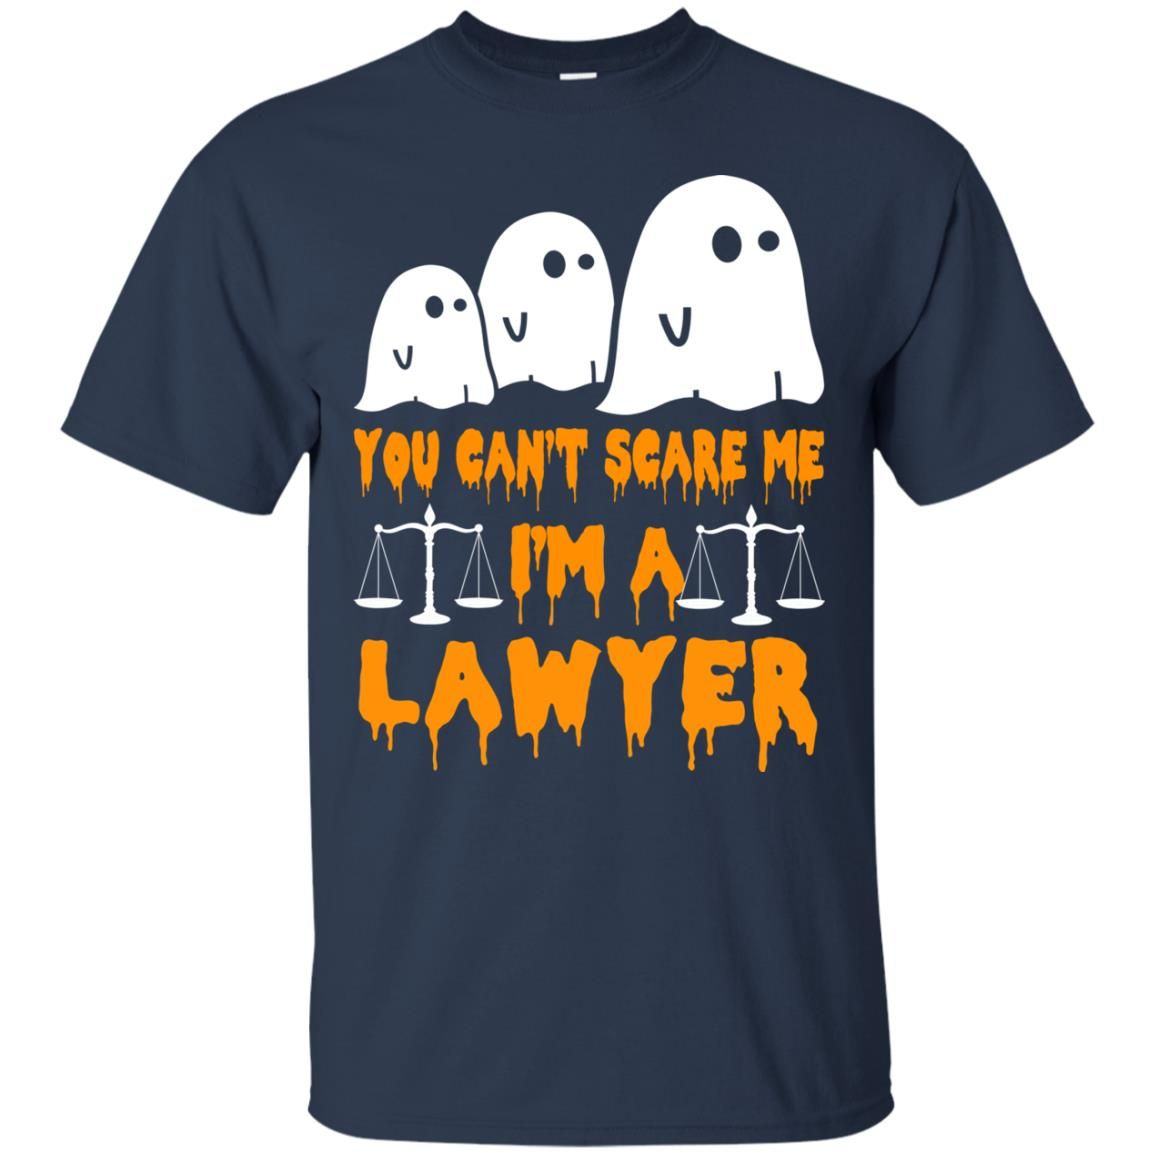 image 633 - You can't scare me I'm a Lawyer shirt, hoodie, tank